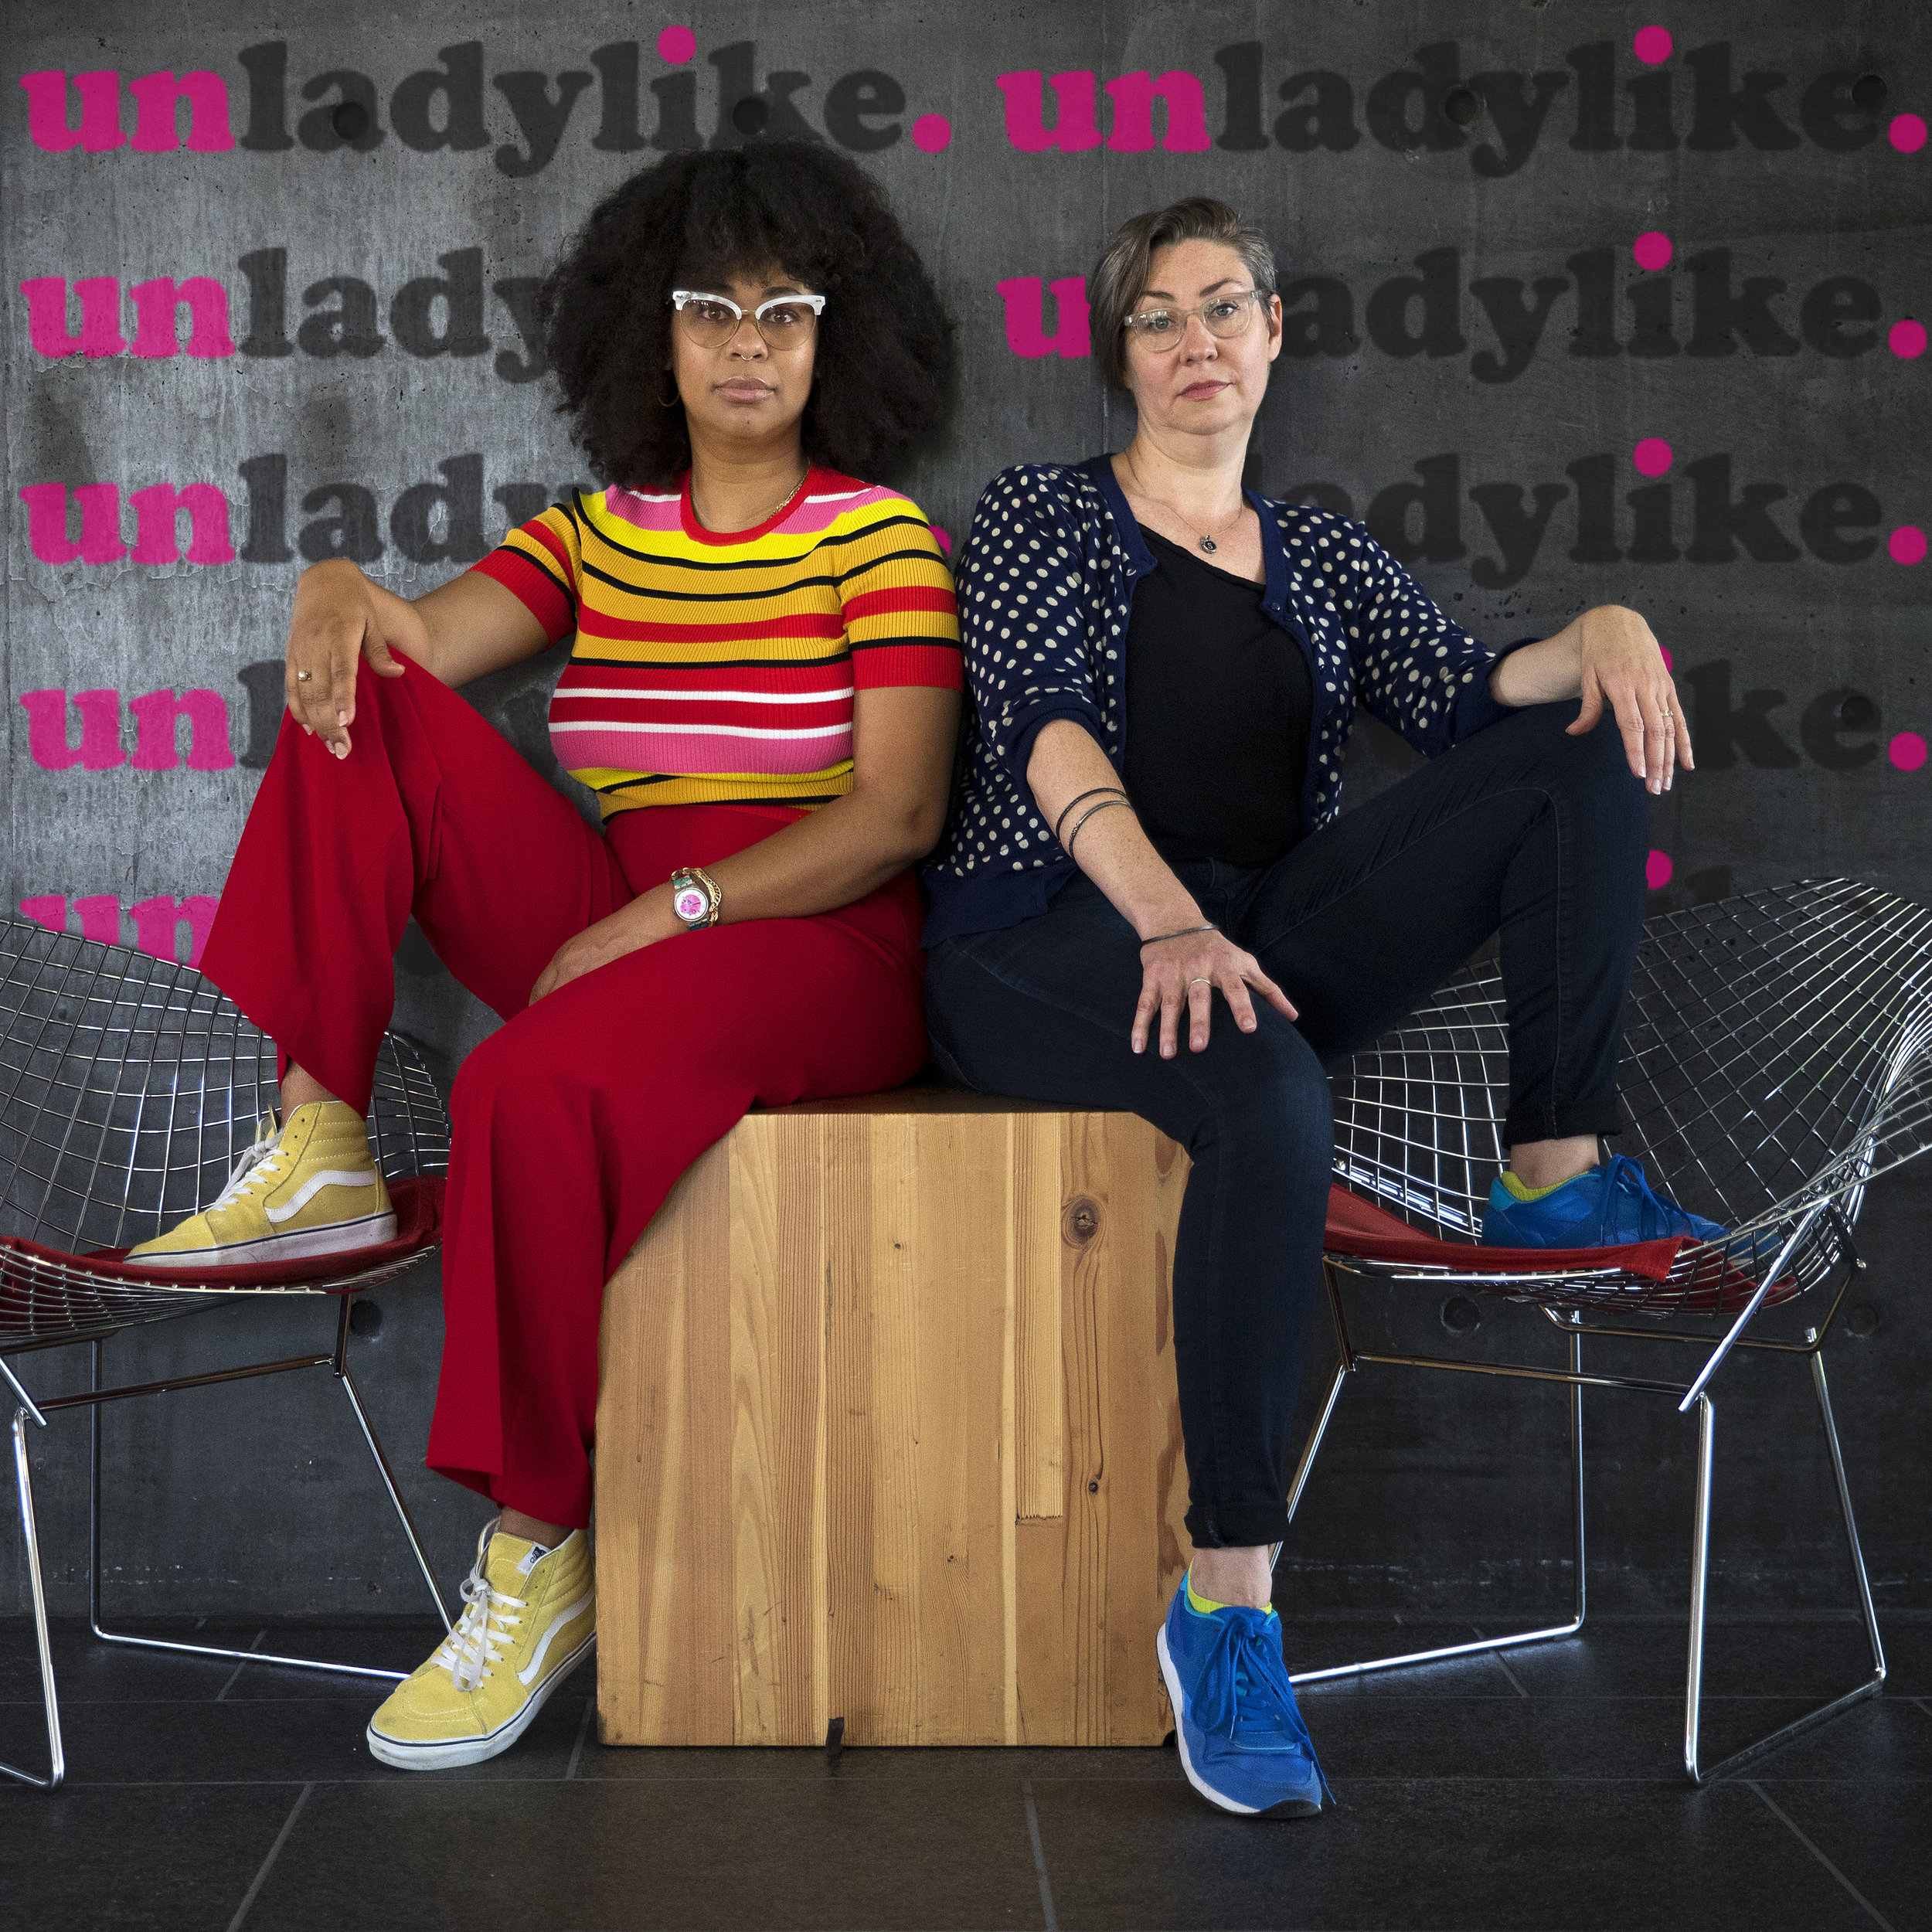 Eula Scott Bynoe and Jeannie Yandel, co-hosts of Battle Tactics for Your Sexist Workplace